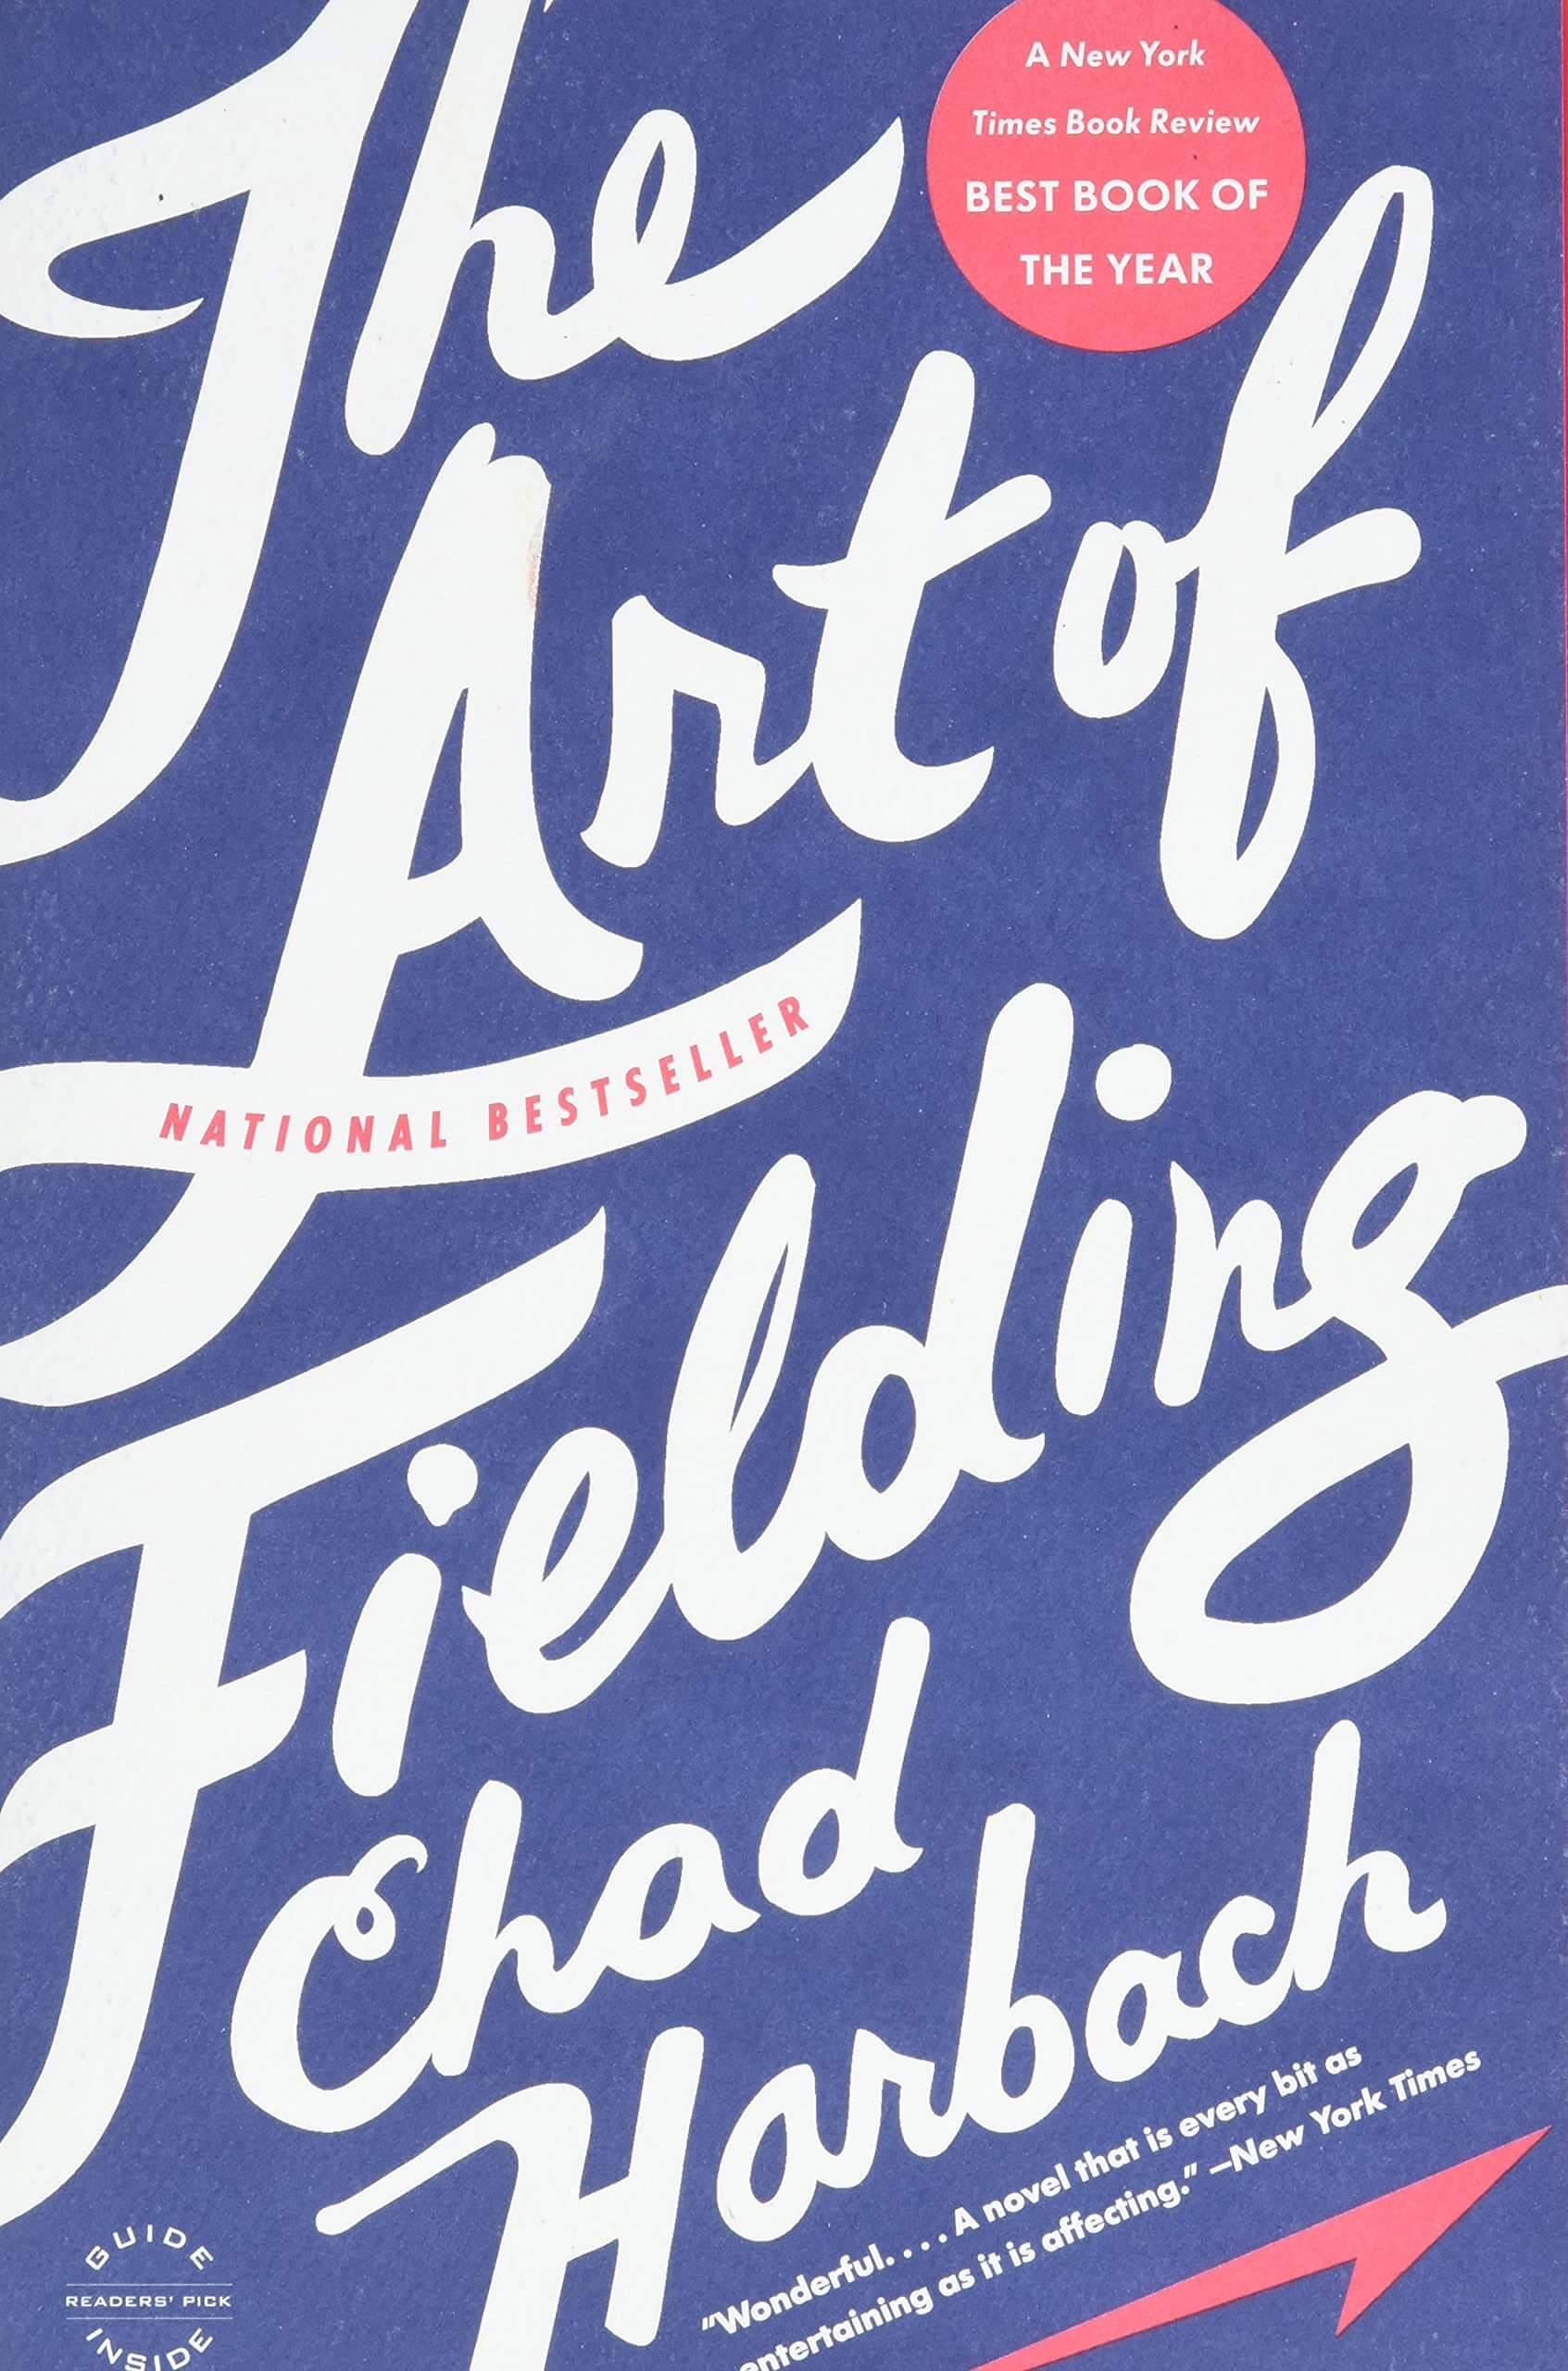 The Art of Fielding book cover image